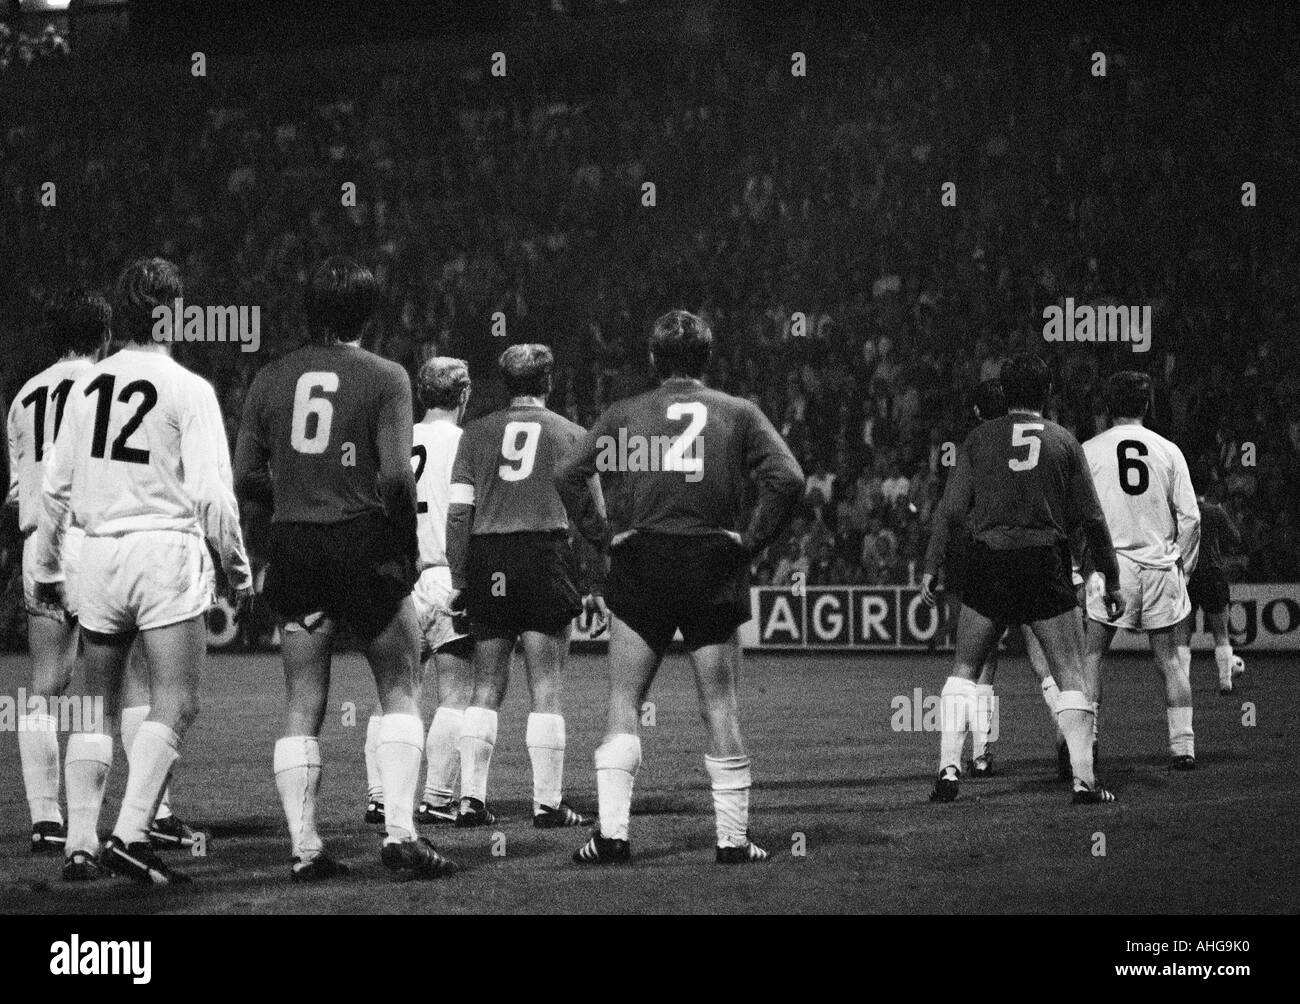 football, Bundesliga, 1970/1971, Borussia Moenchengladbach versus Hanover 96 0:0, Boekelberg Stadium, scene of the match, Gladbach and Hannover players all photographed from behind wait for a free kick - Stock Image